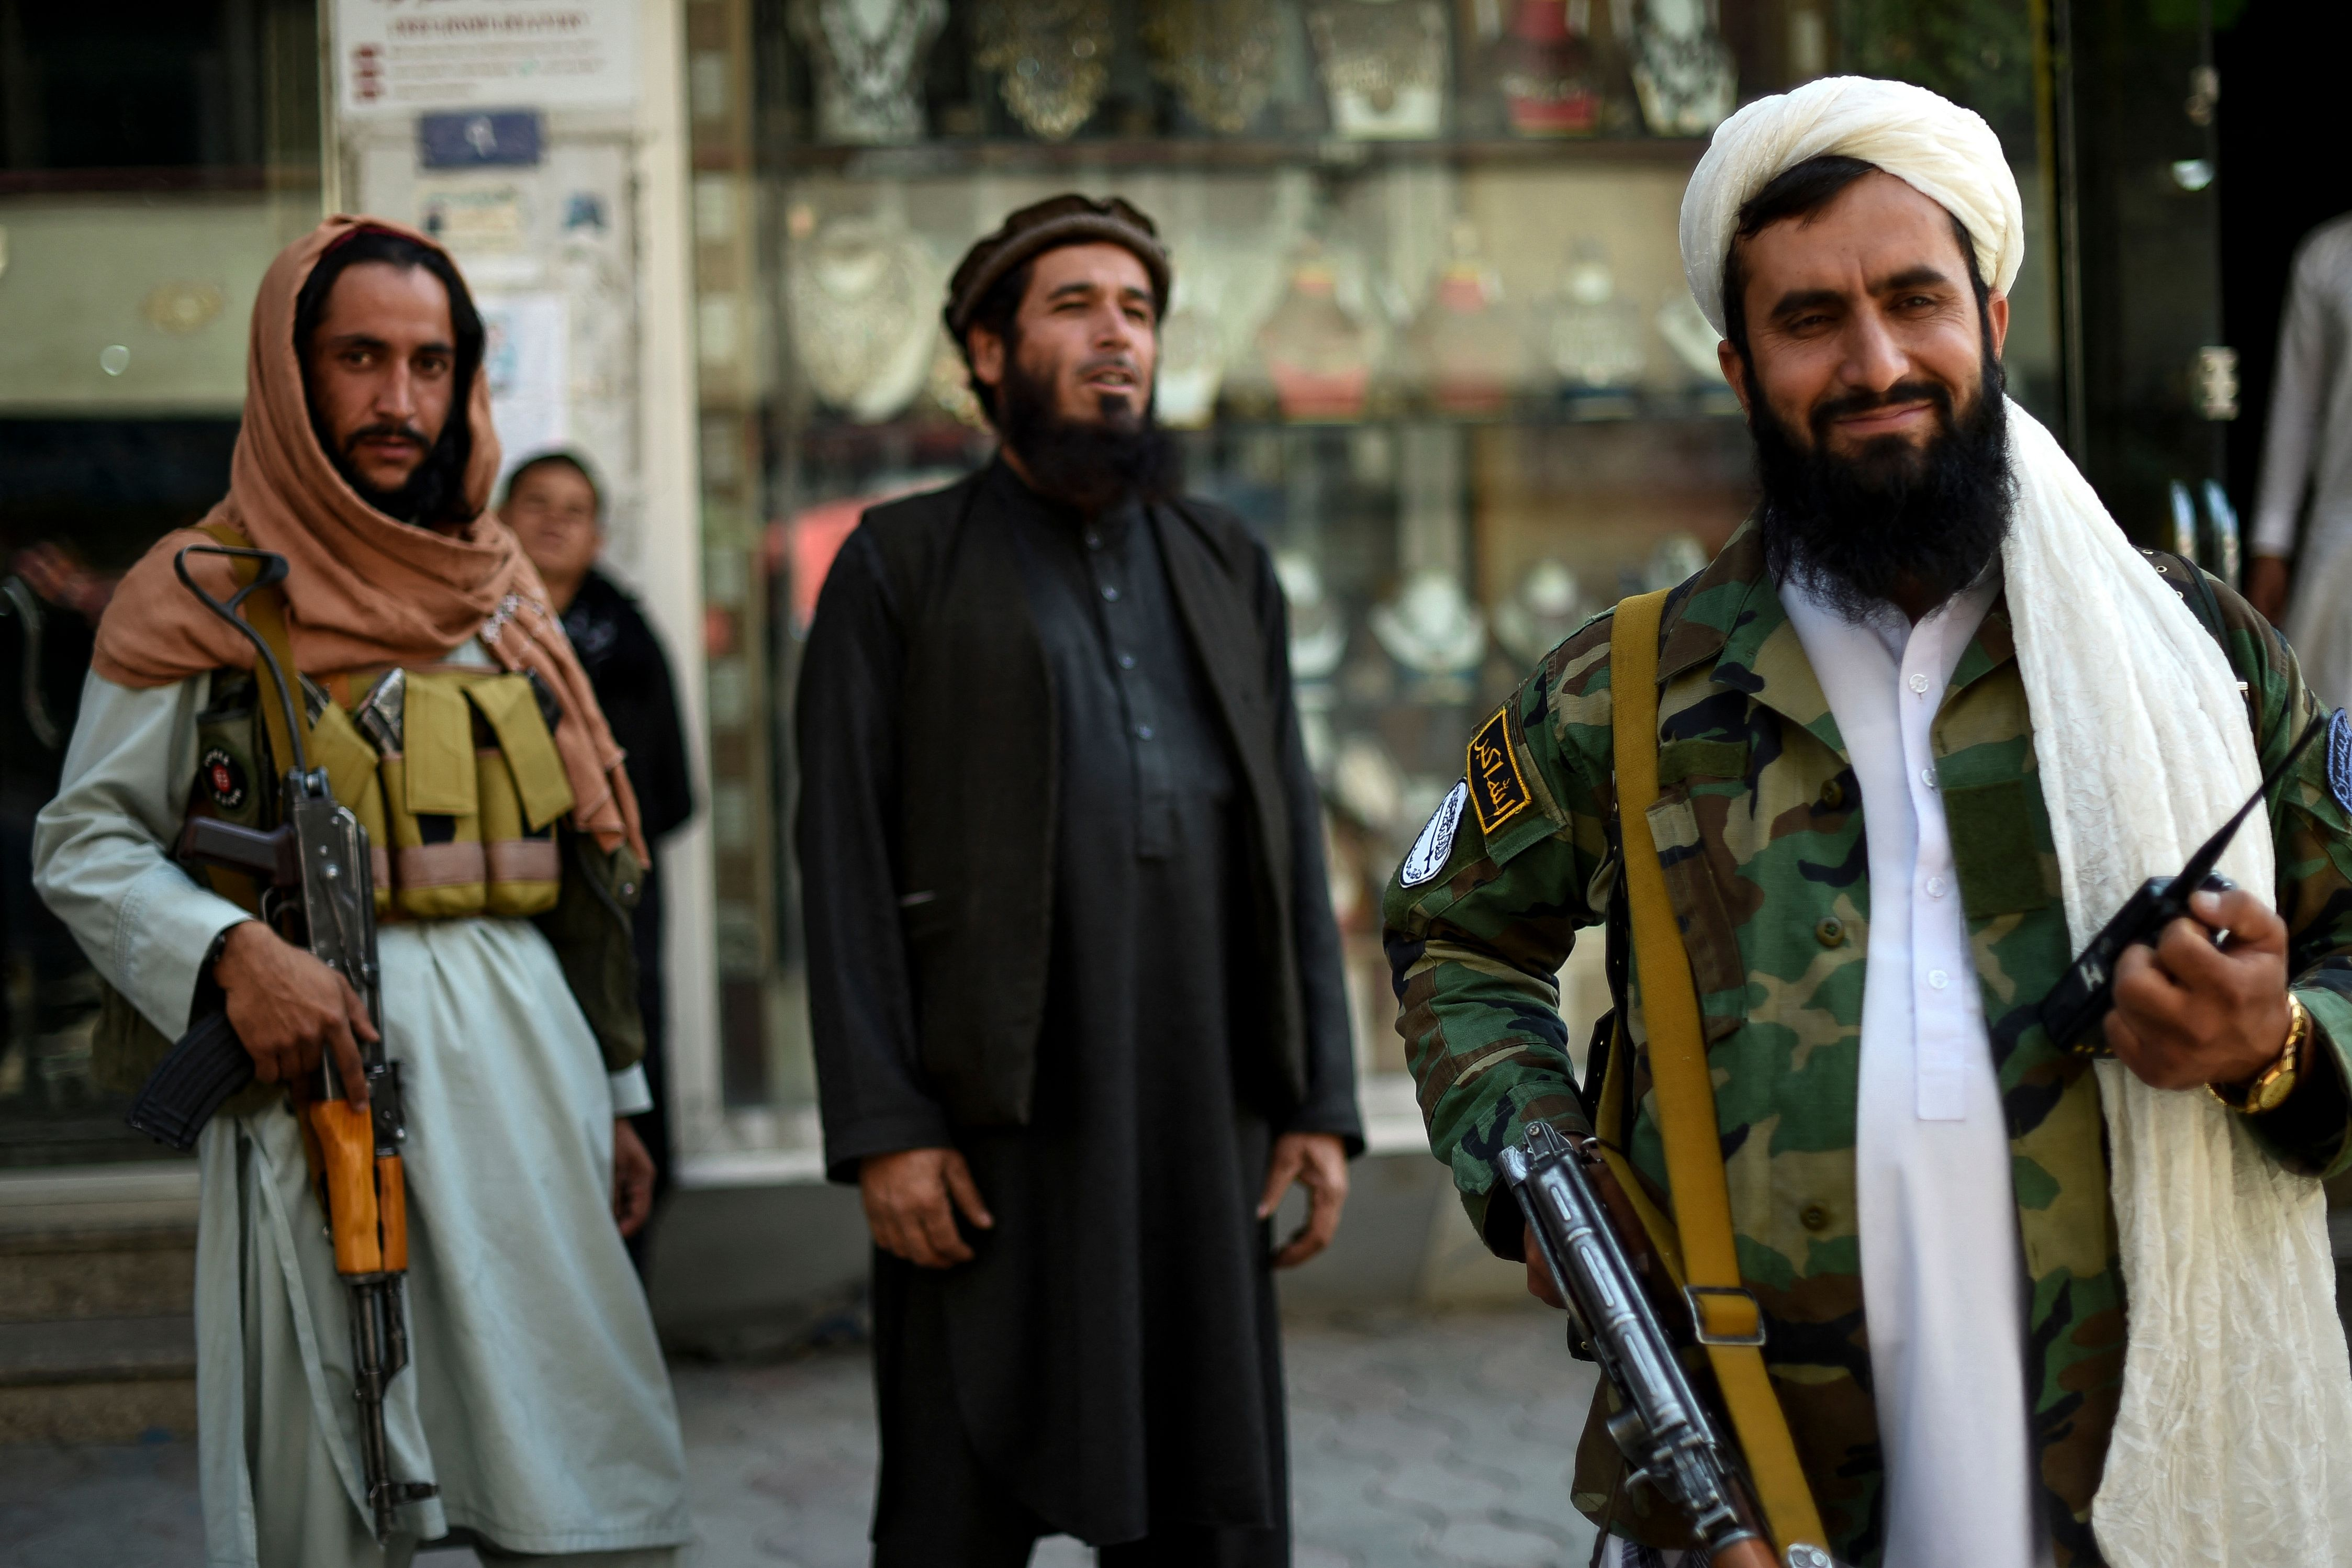 Taliban fighters stand guard on the backdrop of shops selling antiques and decorative merchandise at Chicken Street in Kabul on September 26, 2021.(Photo by WAKIL KOHSAR/AFP via Getty Images)